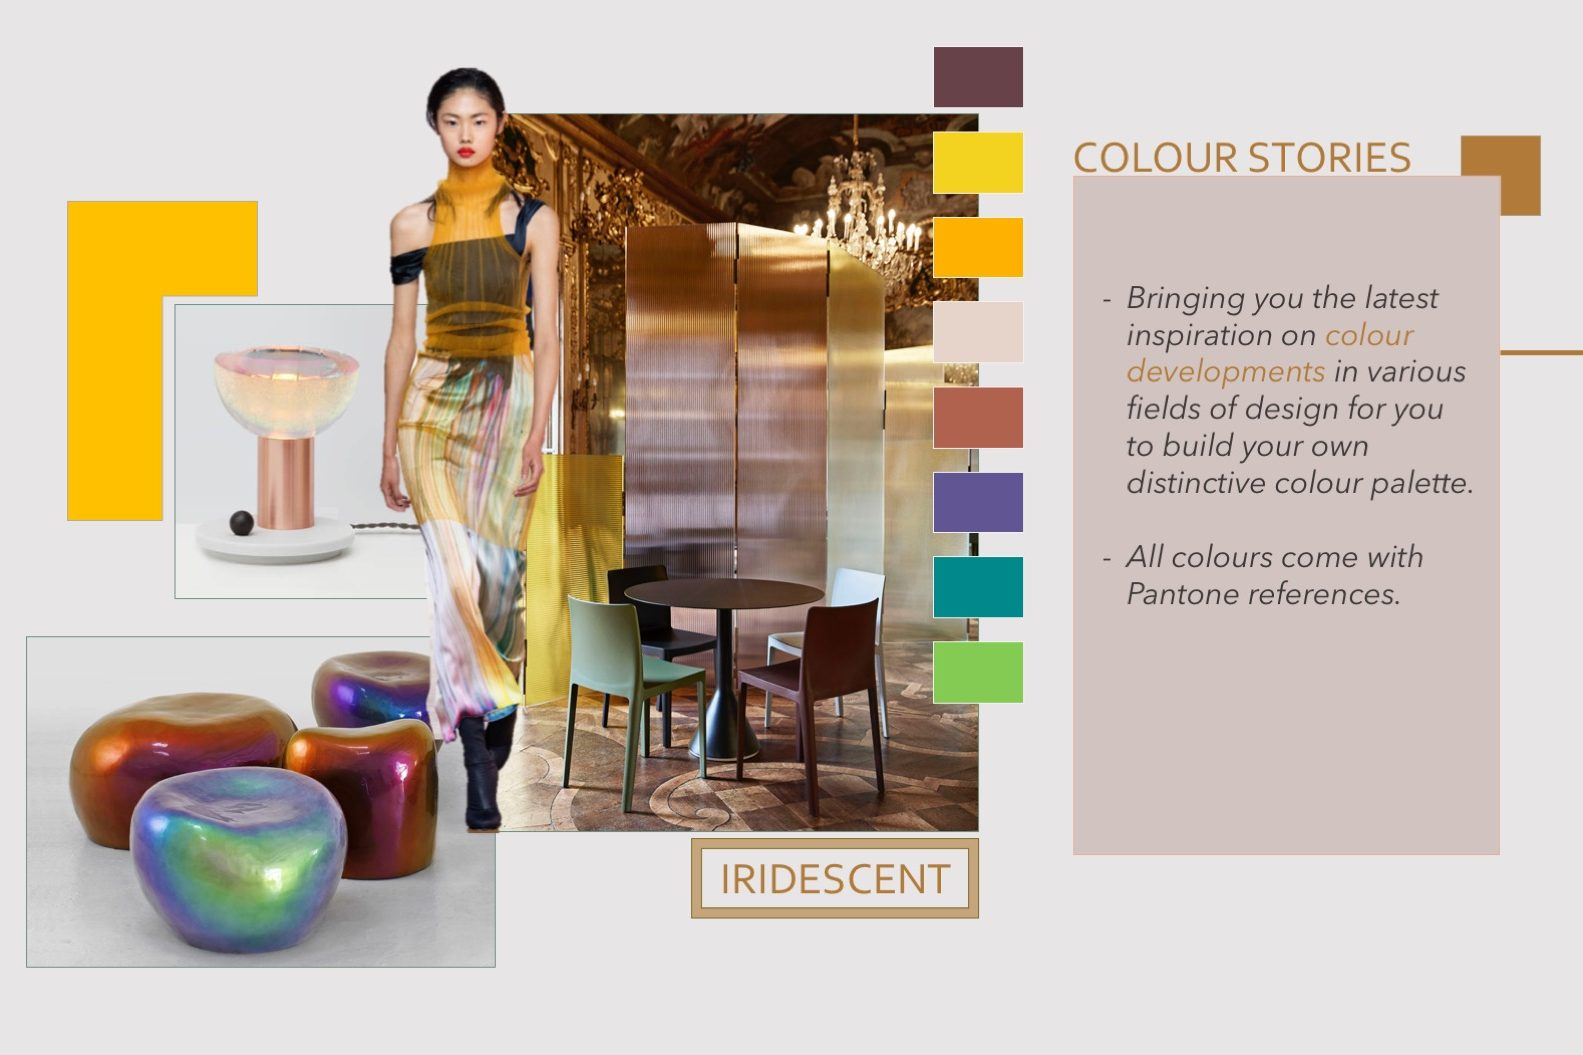 Colour stories. Bringing you the latest inspiration on colour developments in various fields of design for you to build your own distinctive colour palette. All colours come with Pantone references.